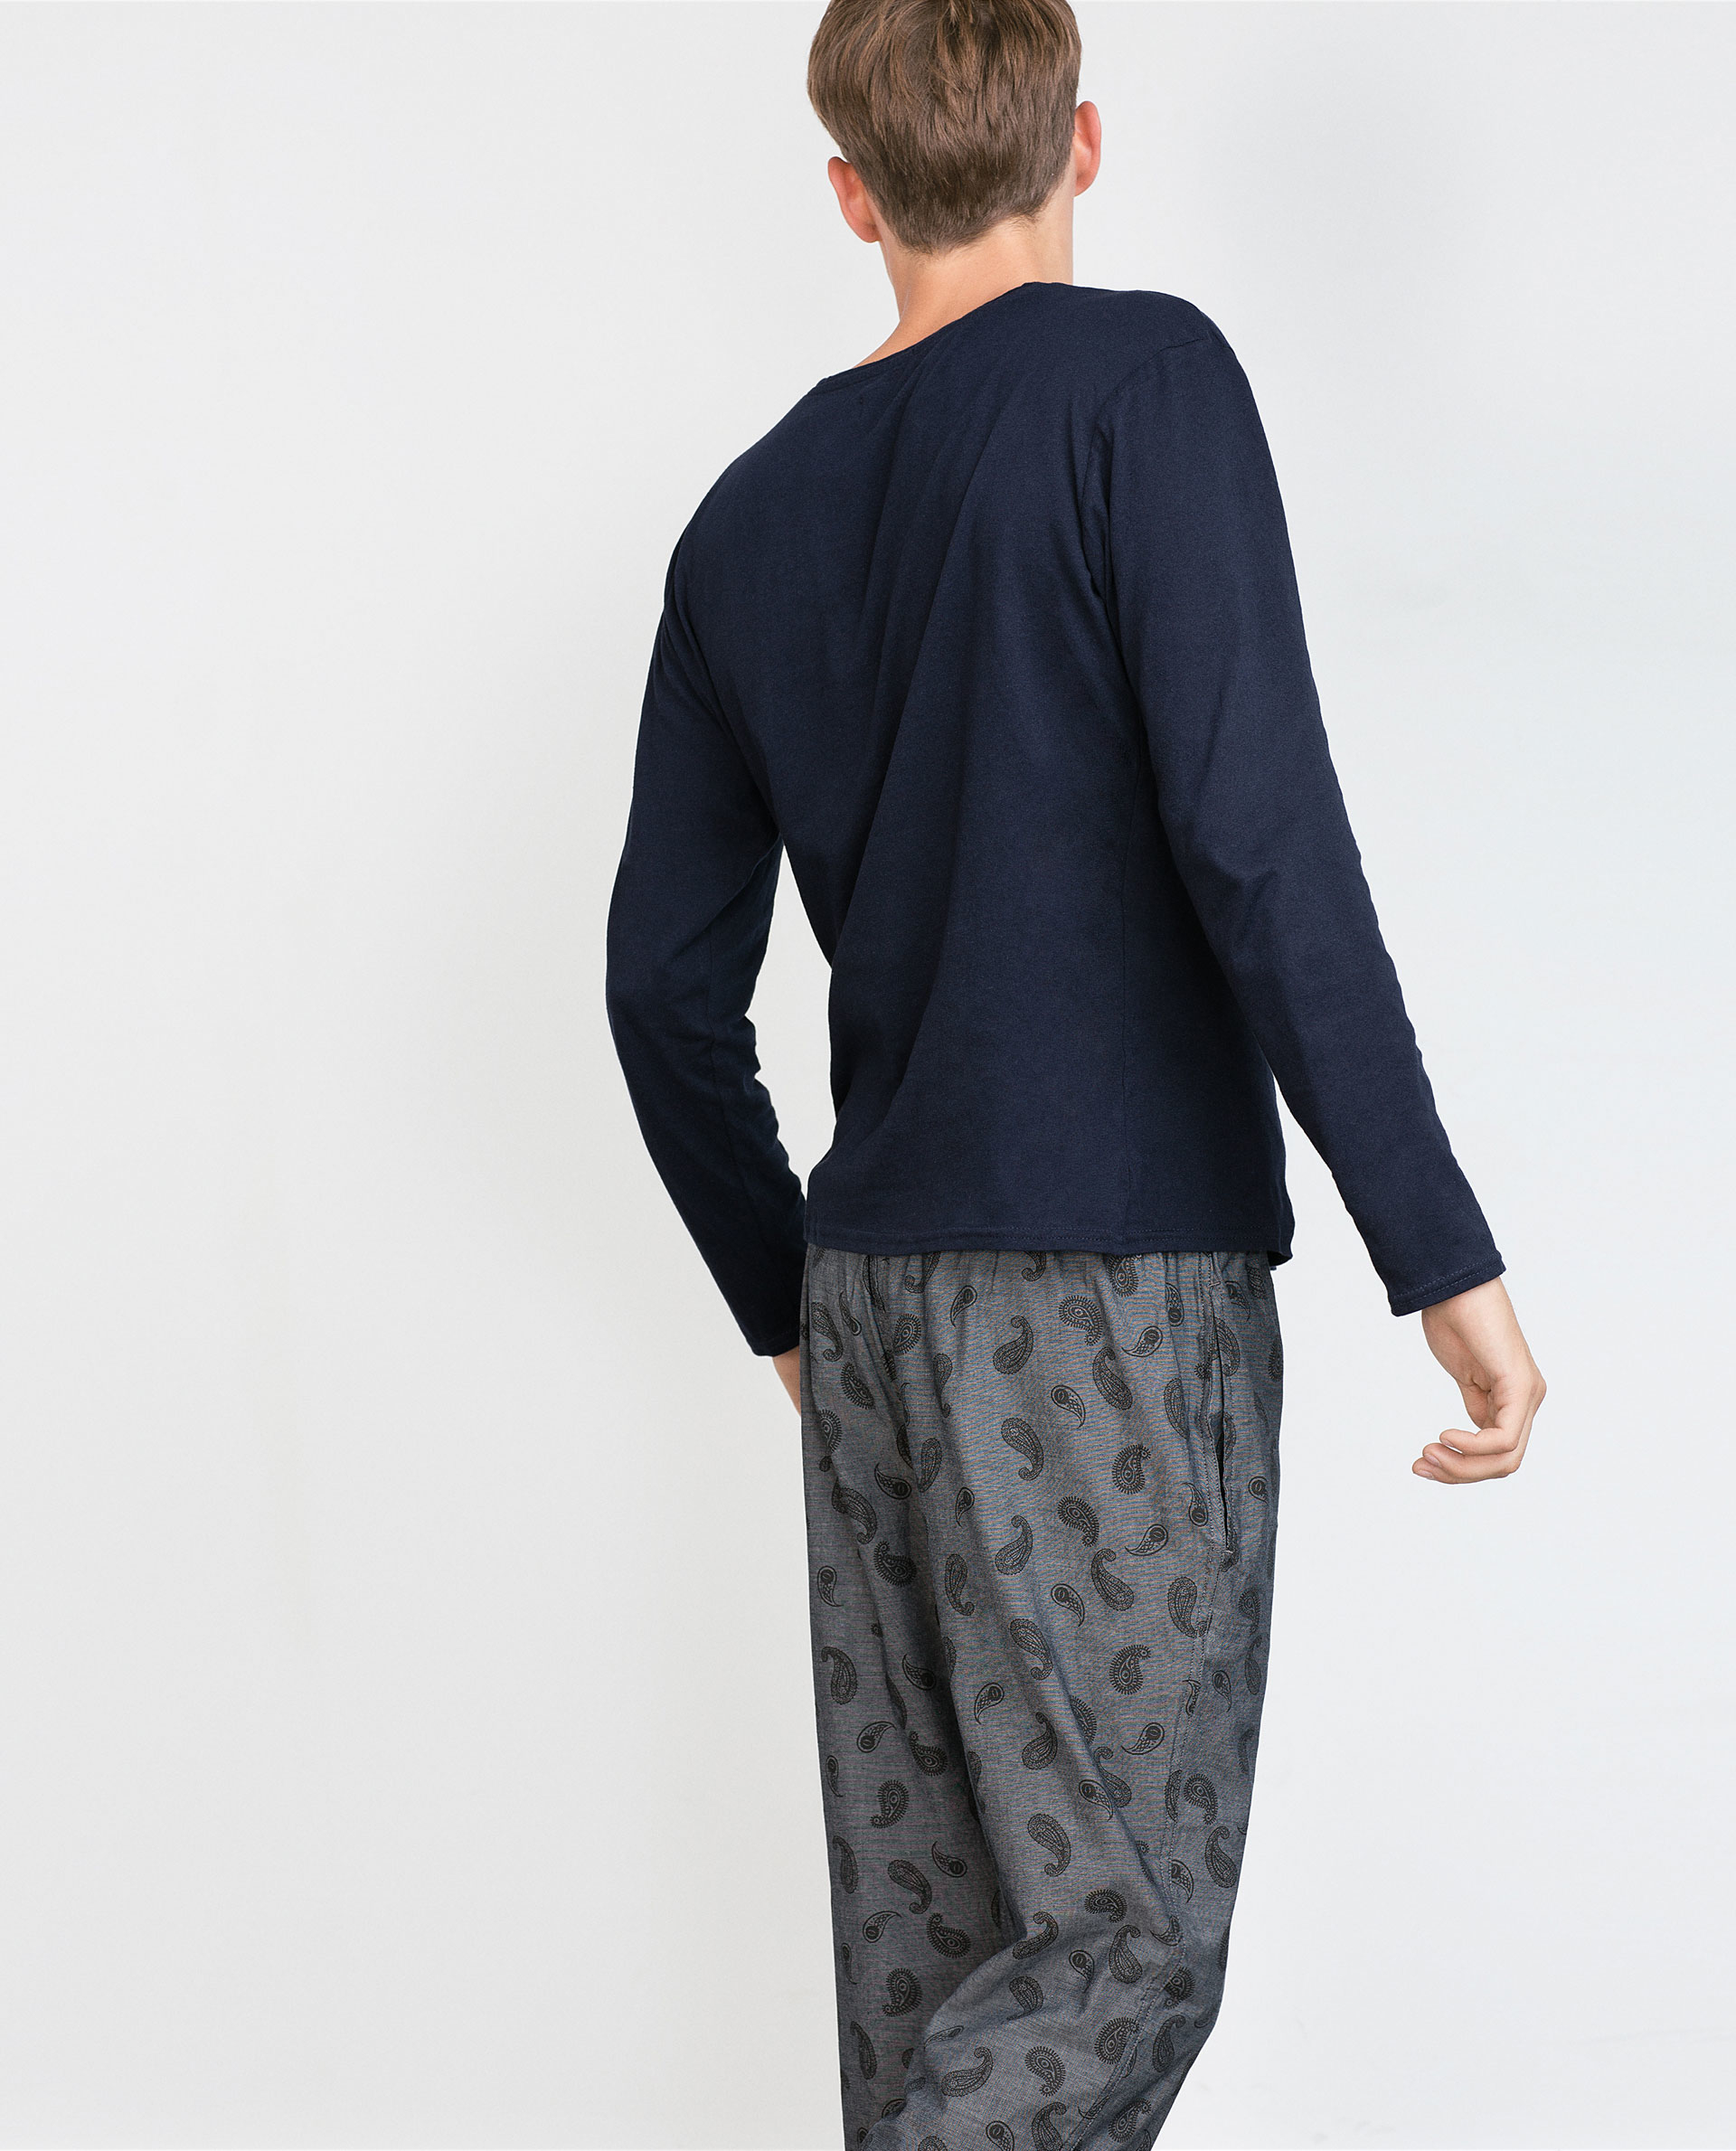 Our cool mens sleepwear collection caters for all shapes, sizes and ages. We're Australian based and offer super fast postage.